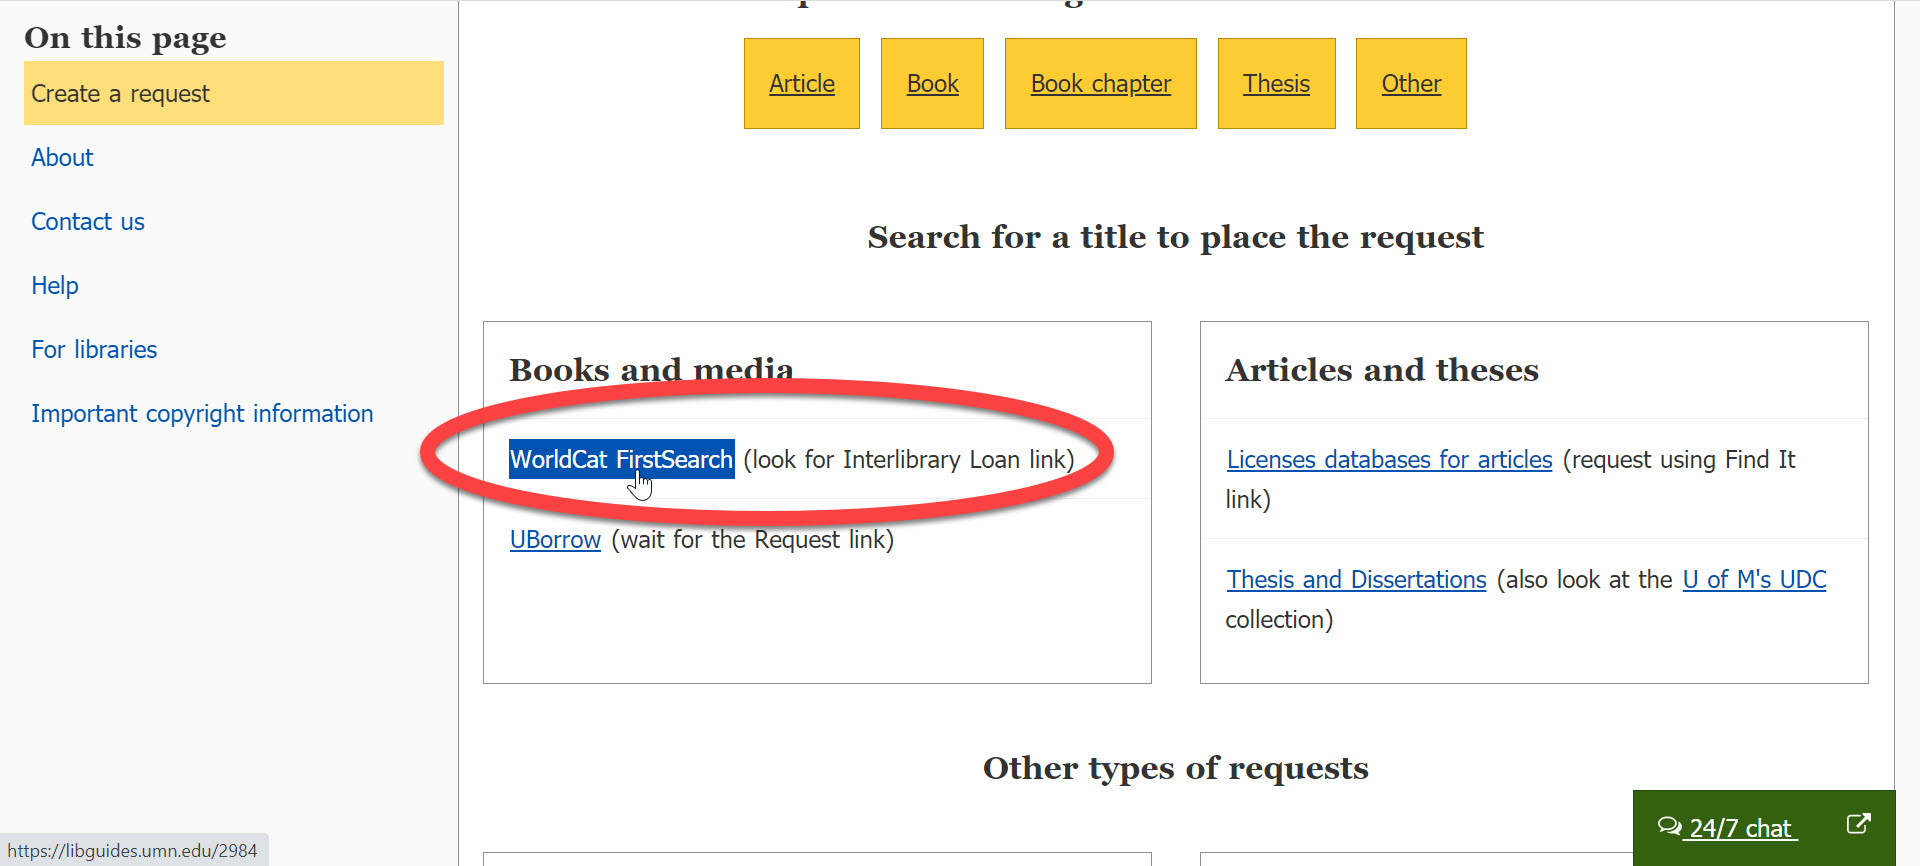 An image of the University Libraries Interlibrary Loan page with a red circle around the link for WorldCat.